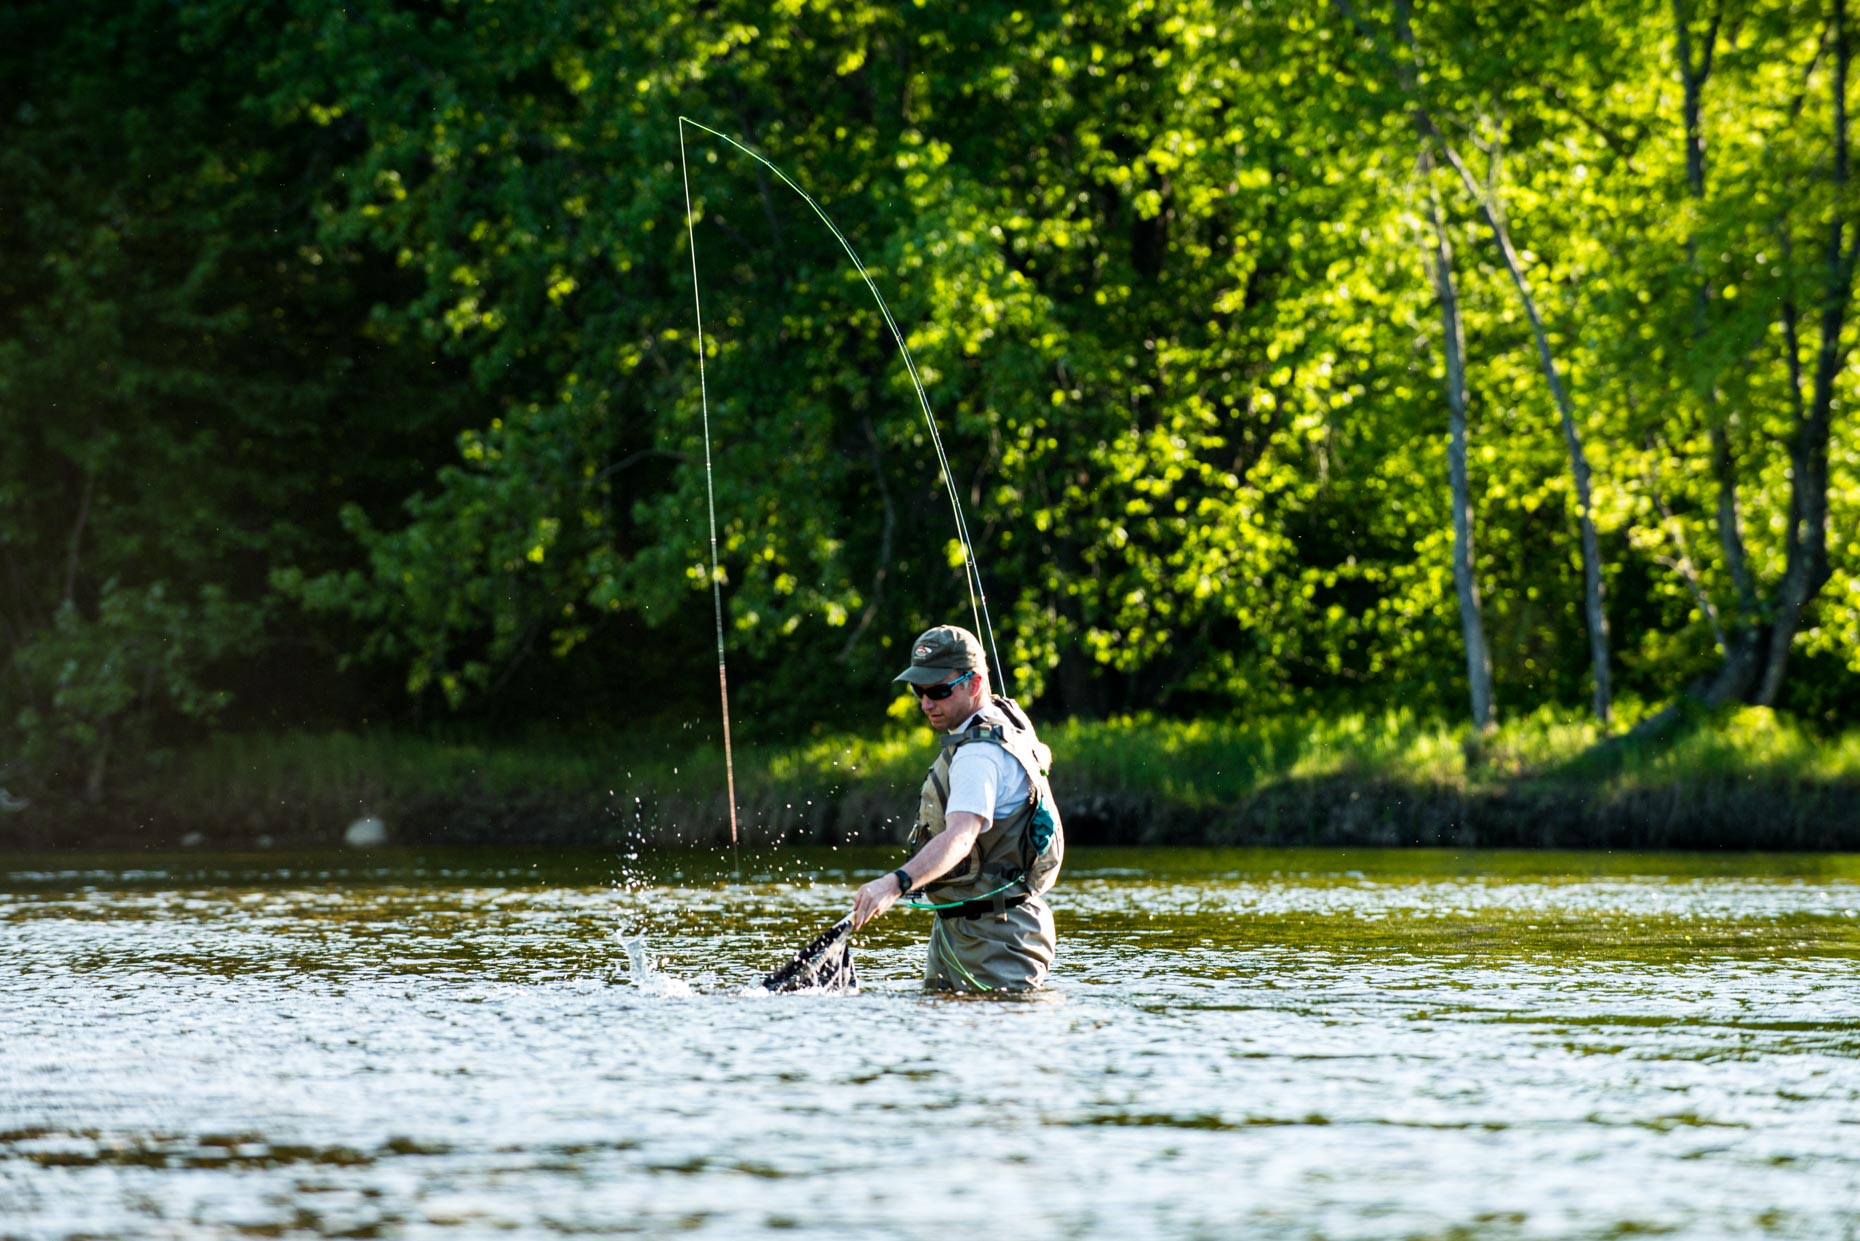 Fly fisherman netting a trout on the Androscoggin River, New Hampshire